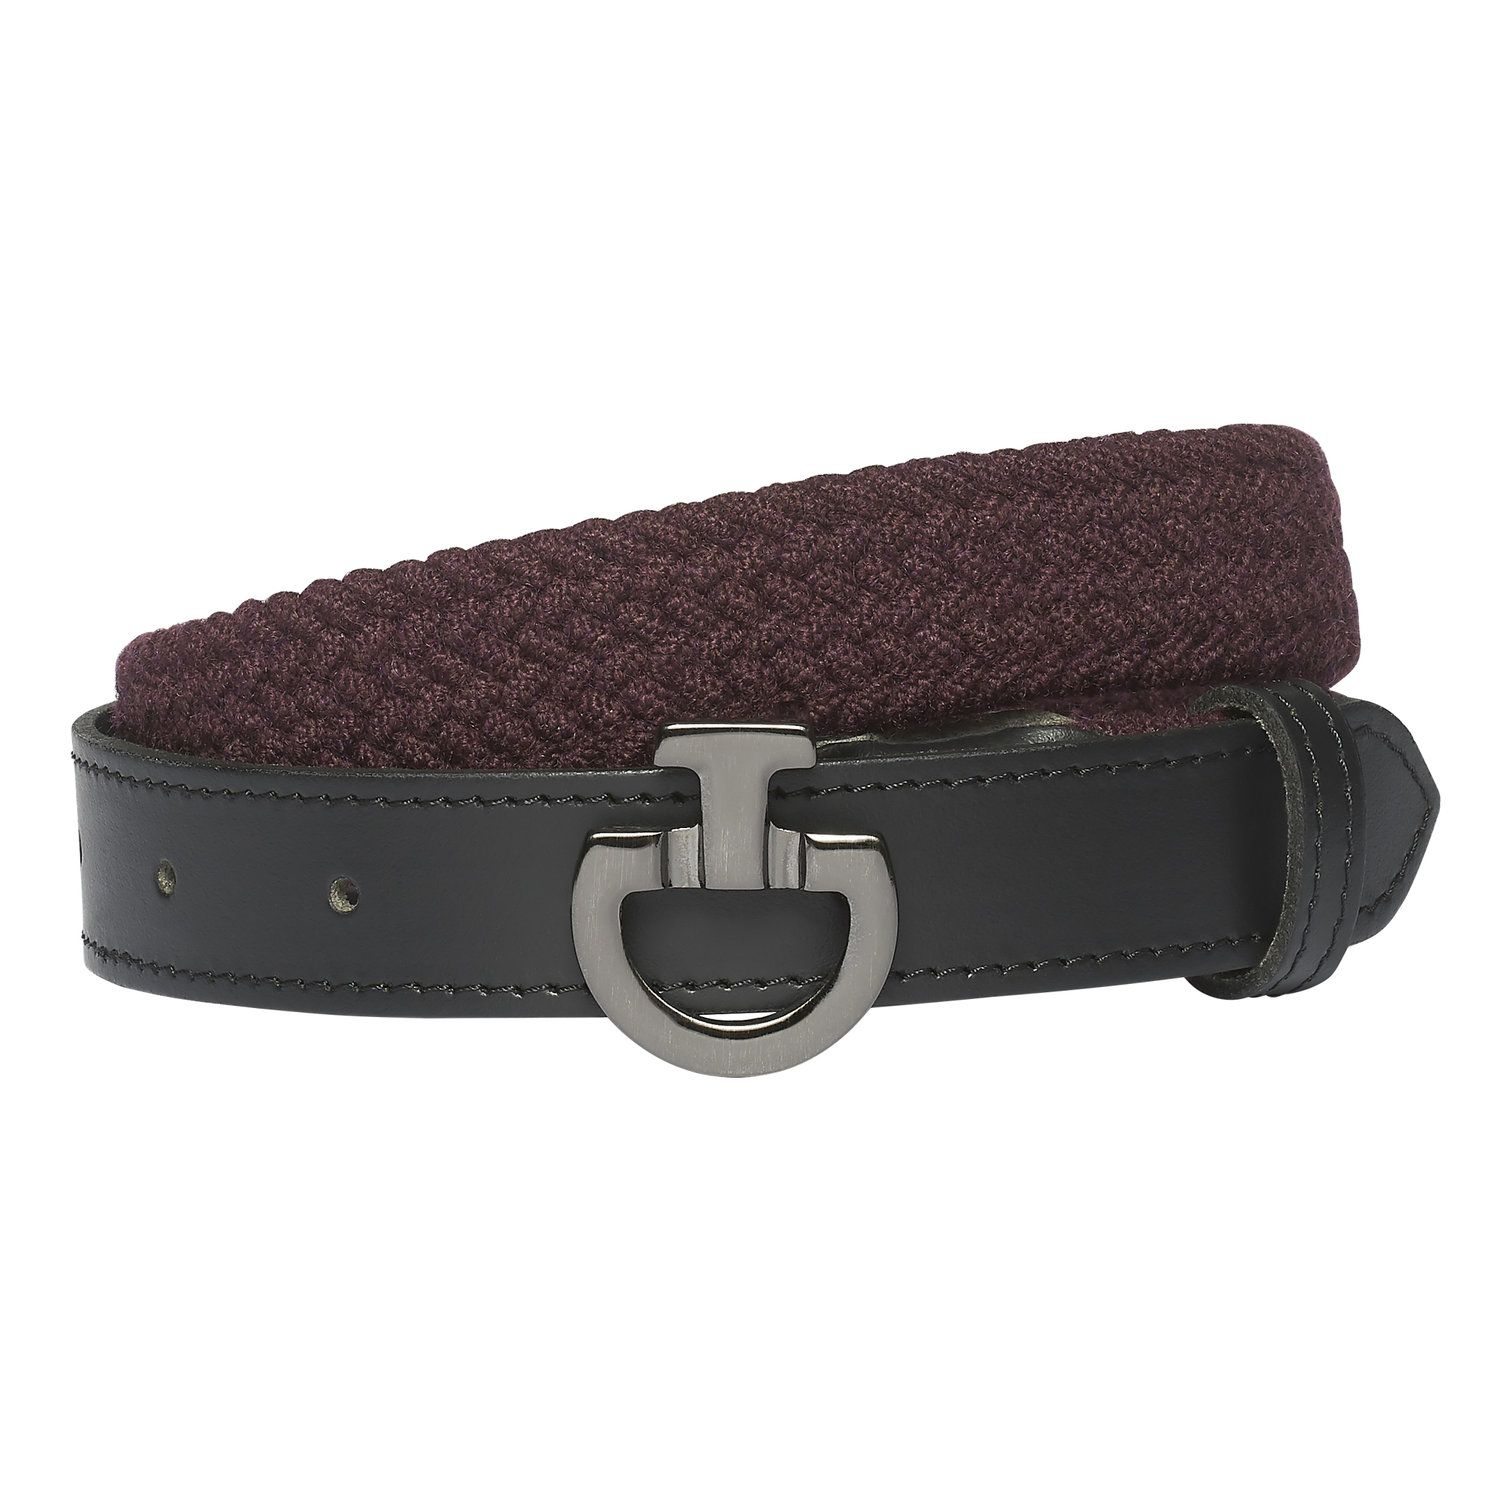 Kid's elastic belt